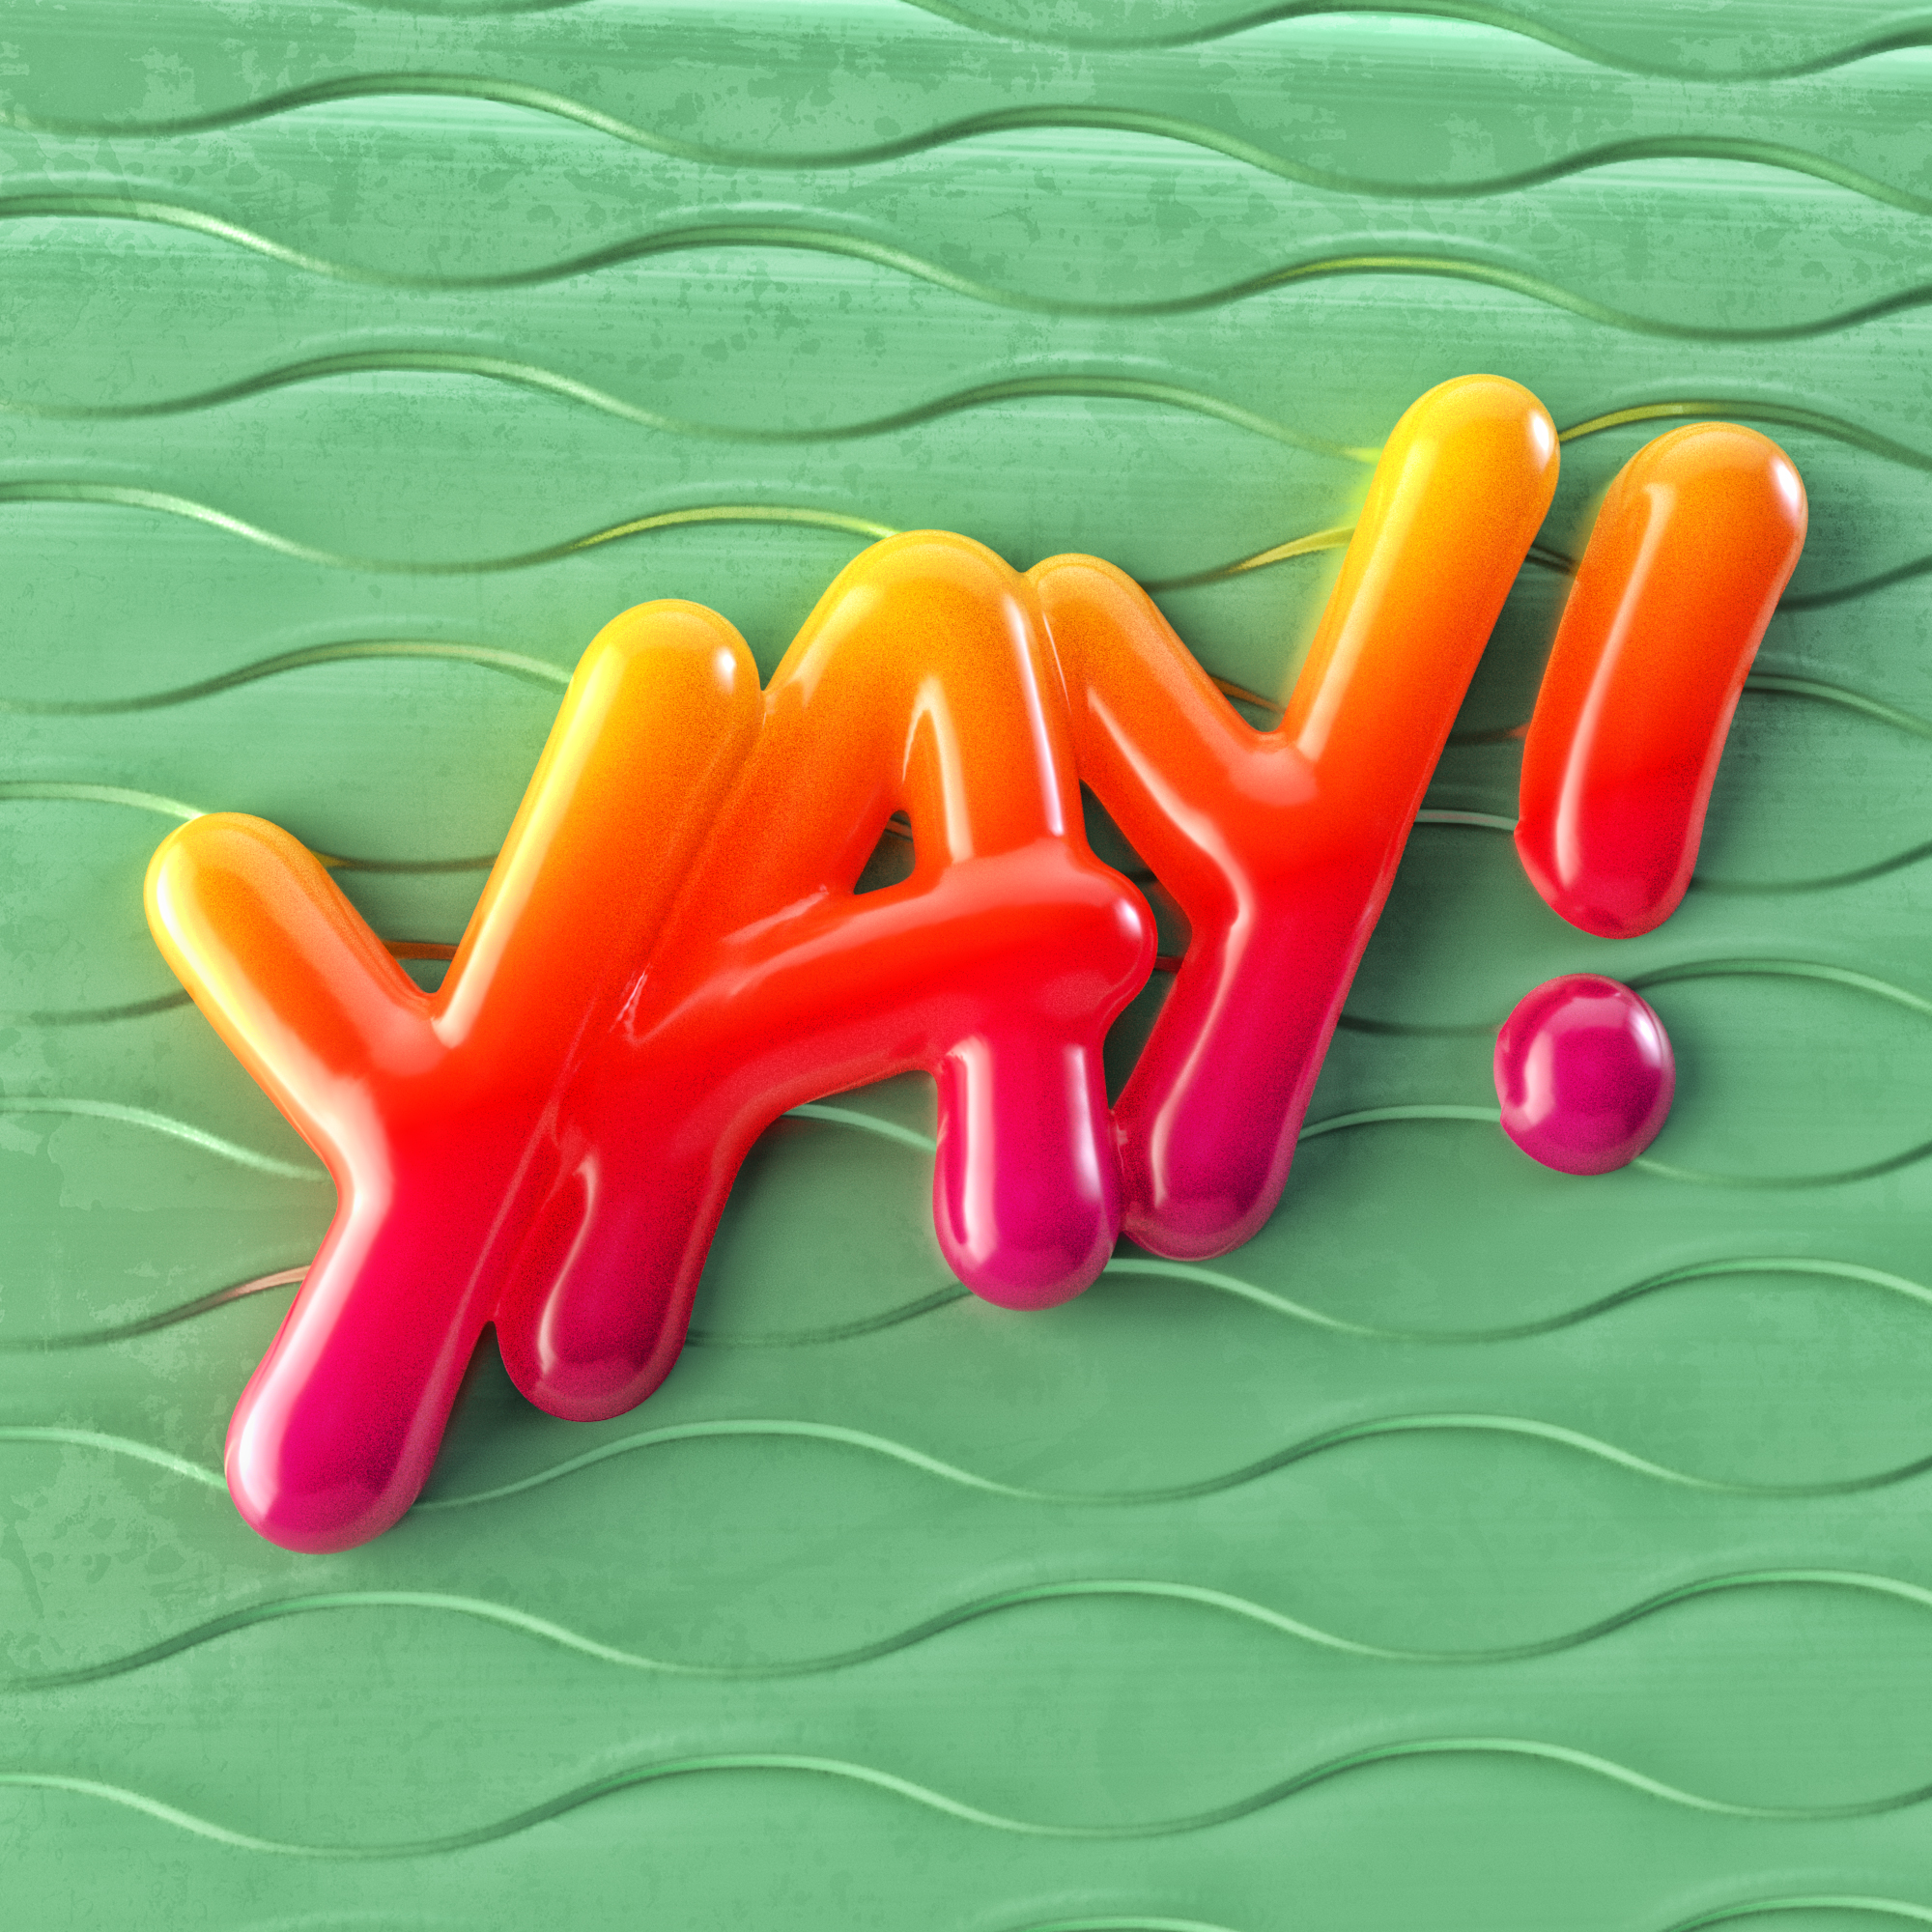 """Yay!"" fun colorful 3D type by Noah Camp"